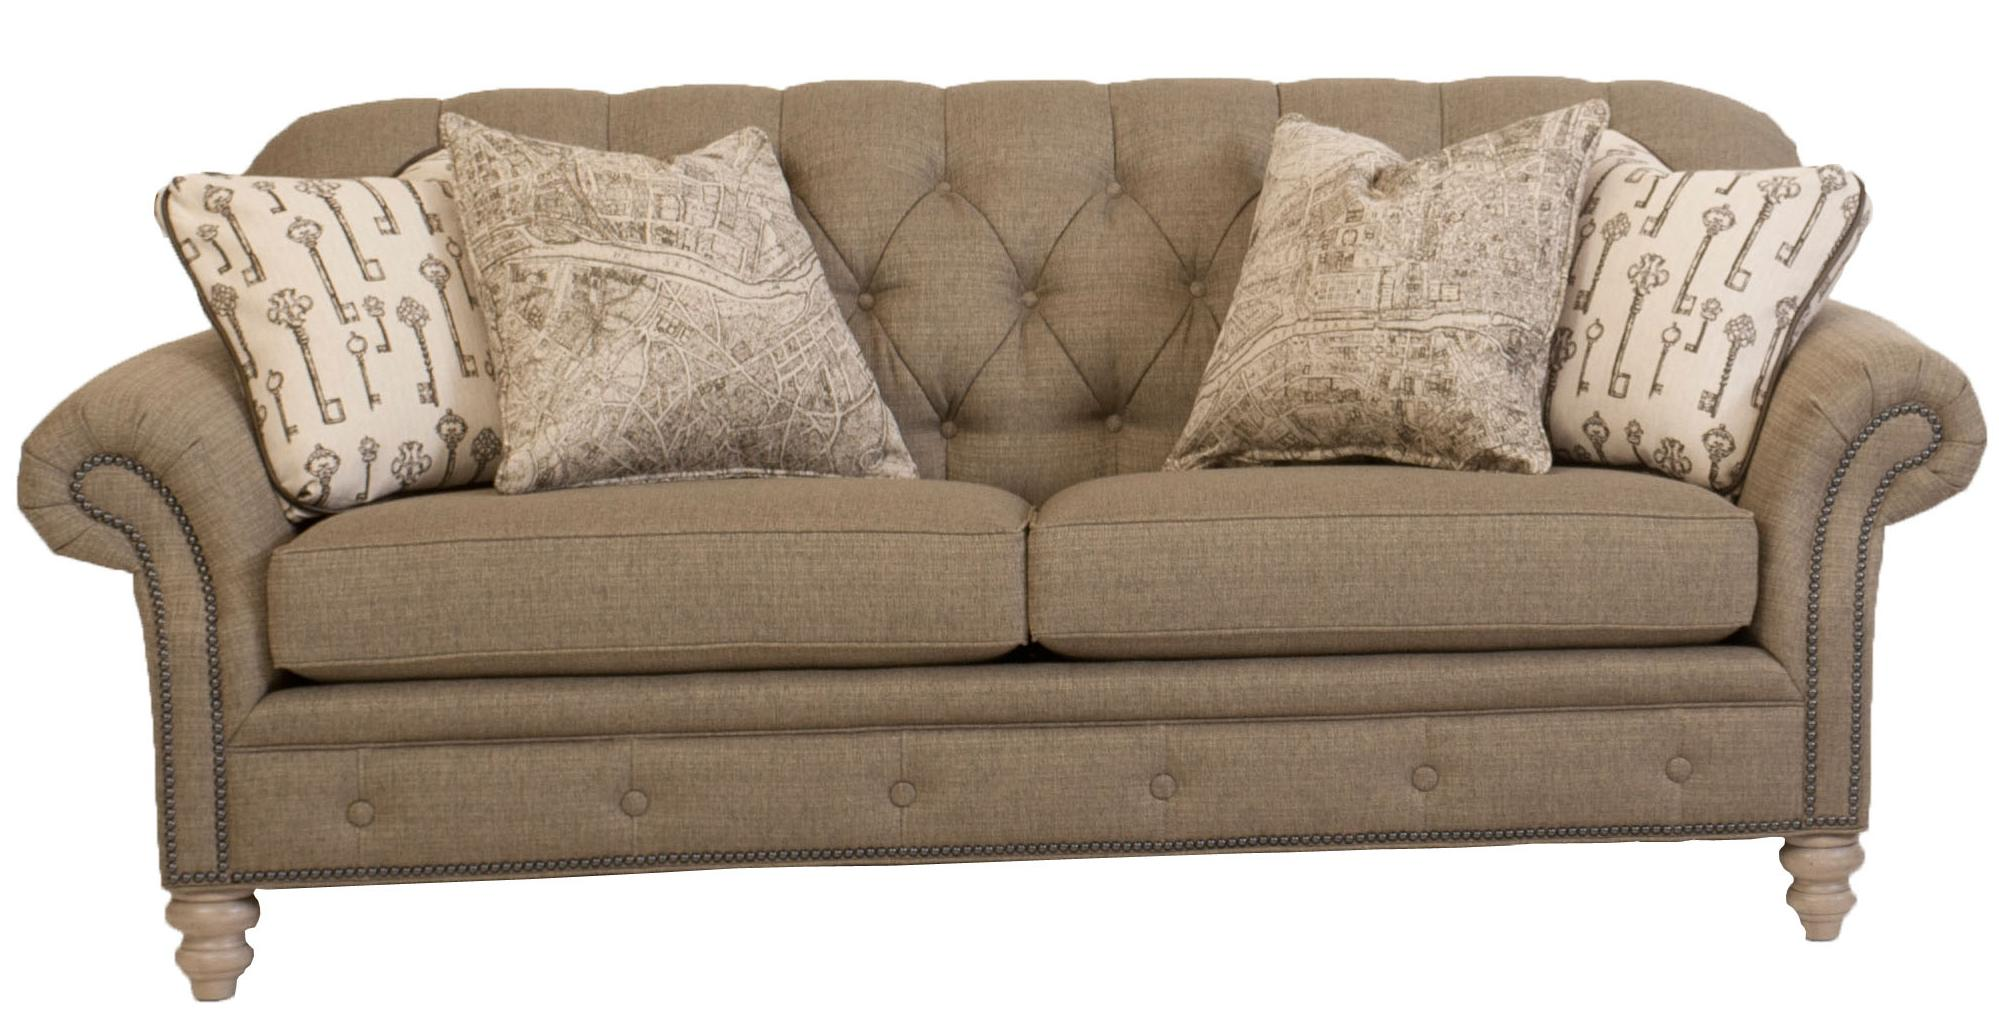 button tufted sofas west elm urban sofa dimensions traditional with nailhead trim by smith